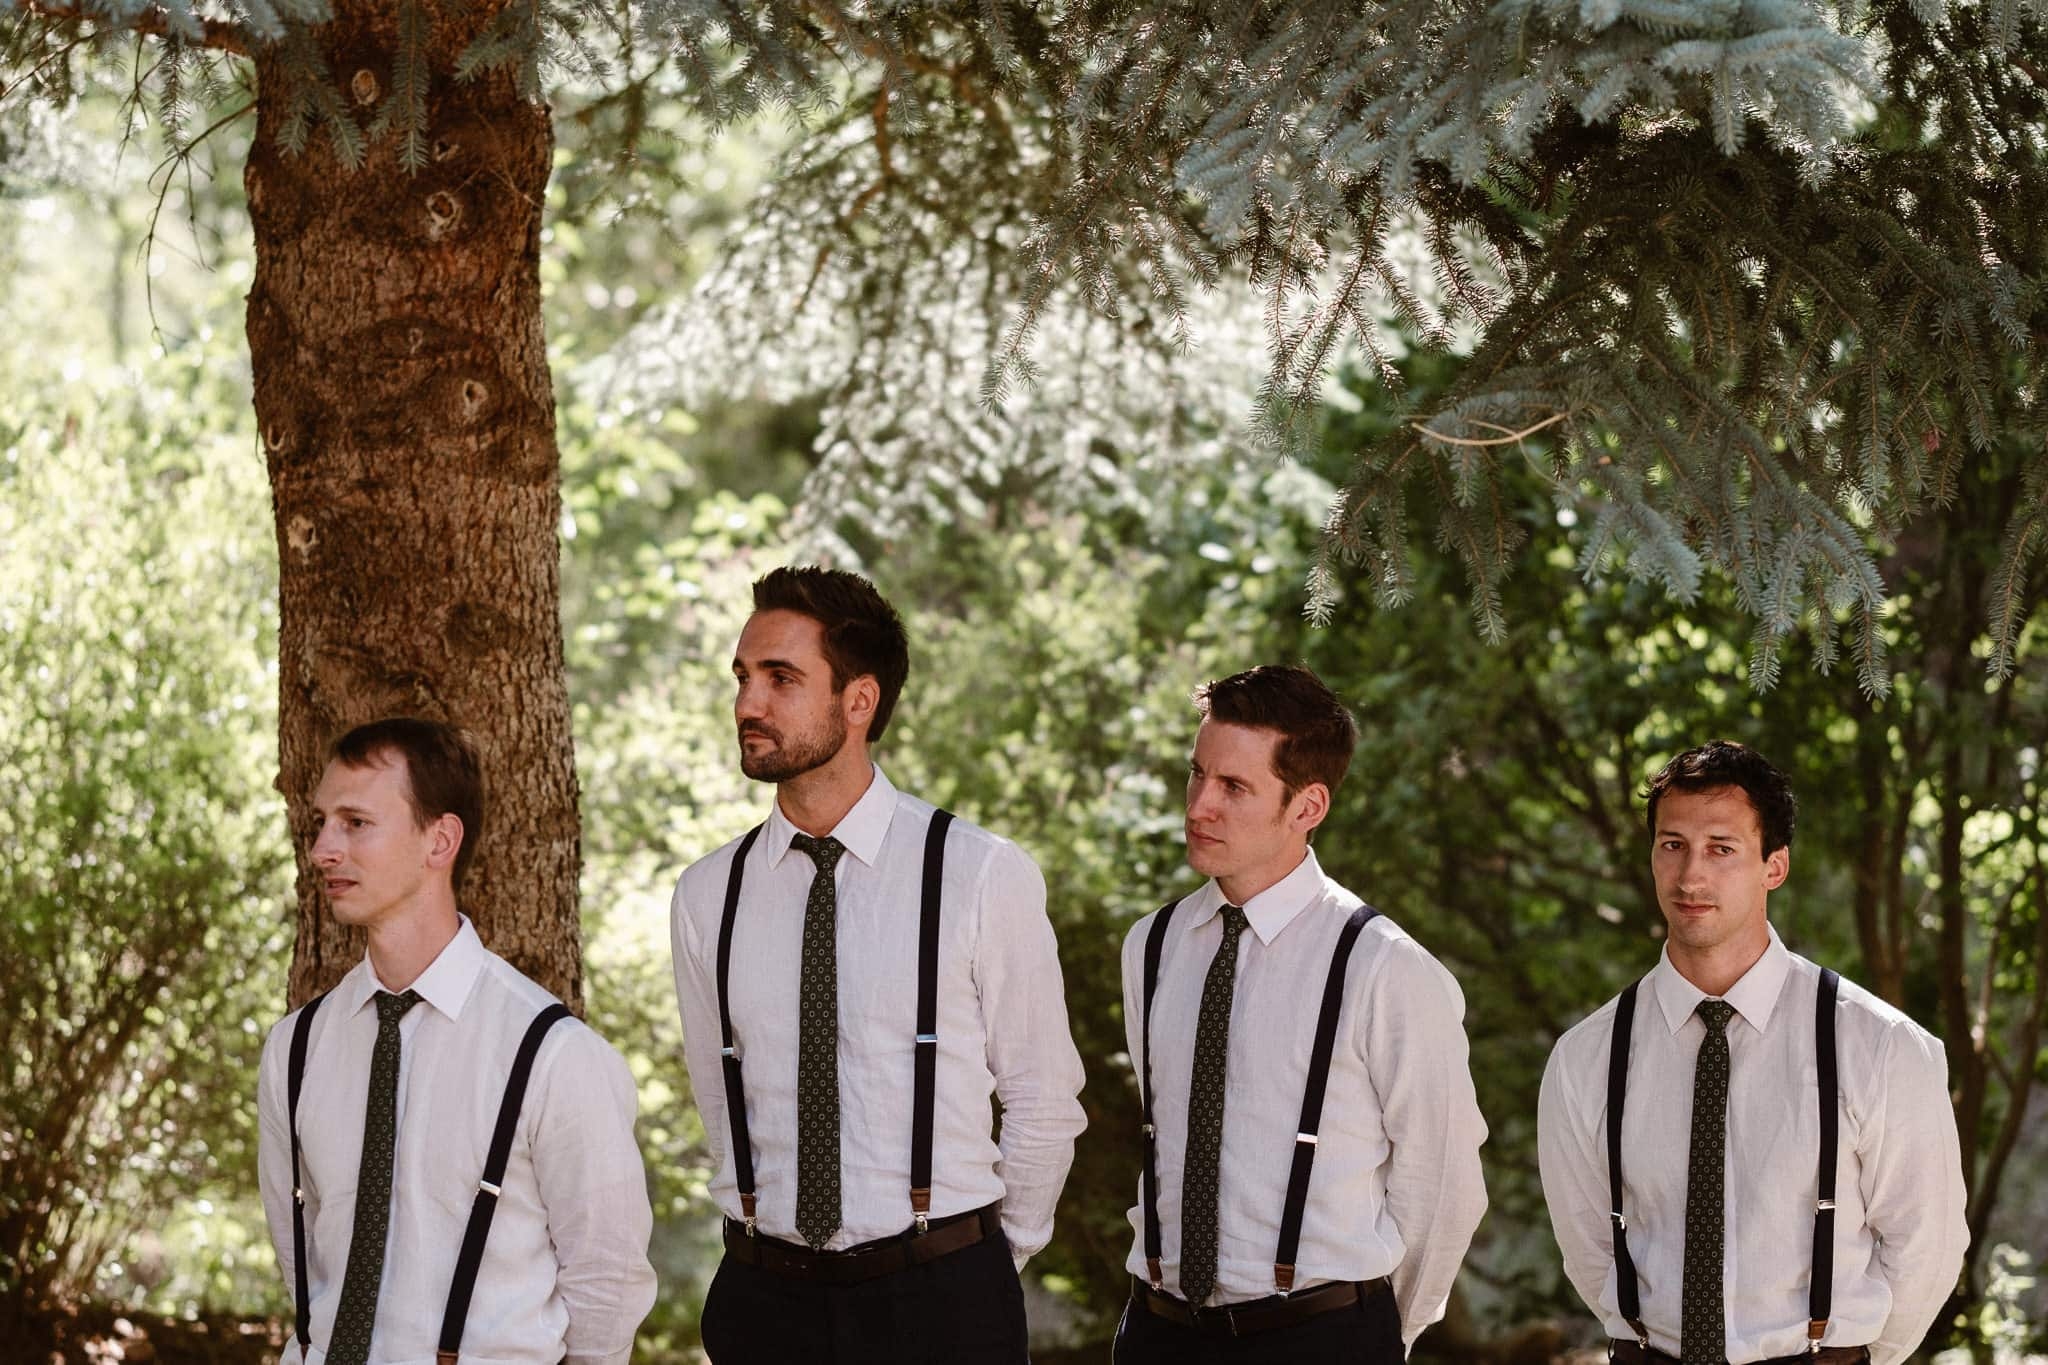 Redstone Inn wedding photographer, Carbondale wedding photographer, Colorado intimate wedding photographer, wedding ceremony, groomsmen in white shirts with black ties and suspenders